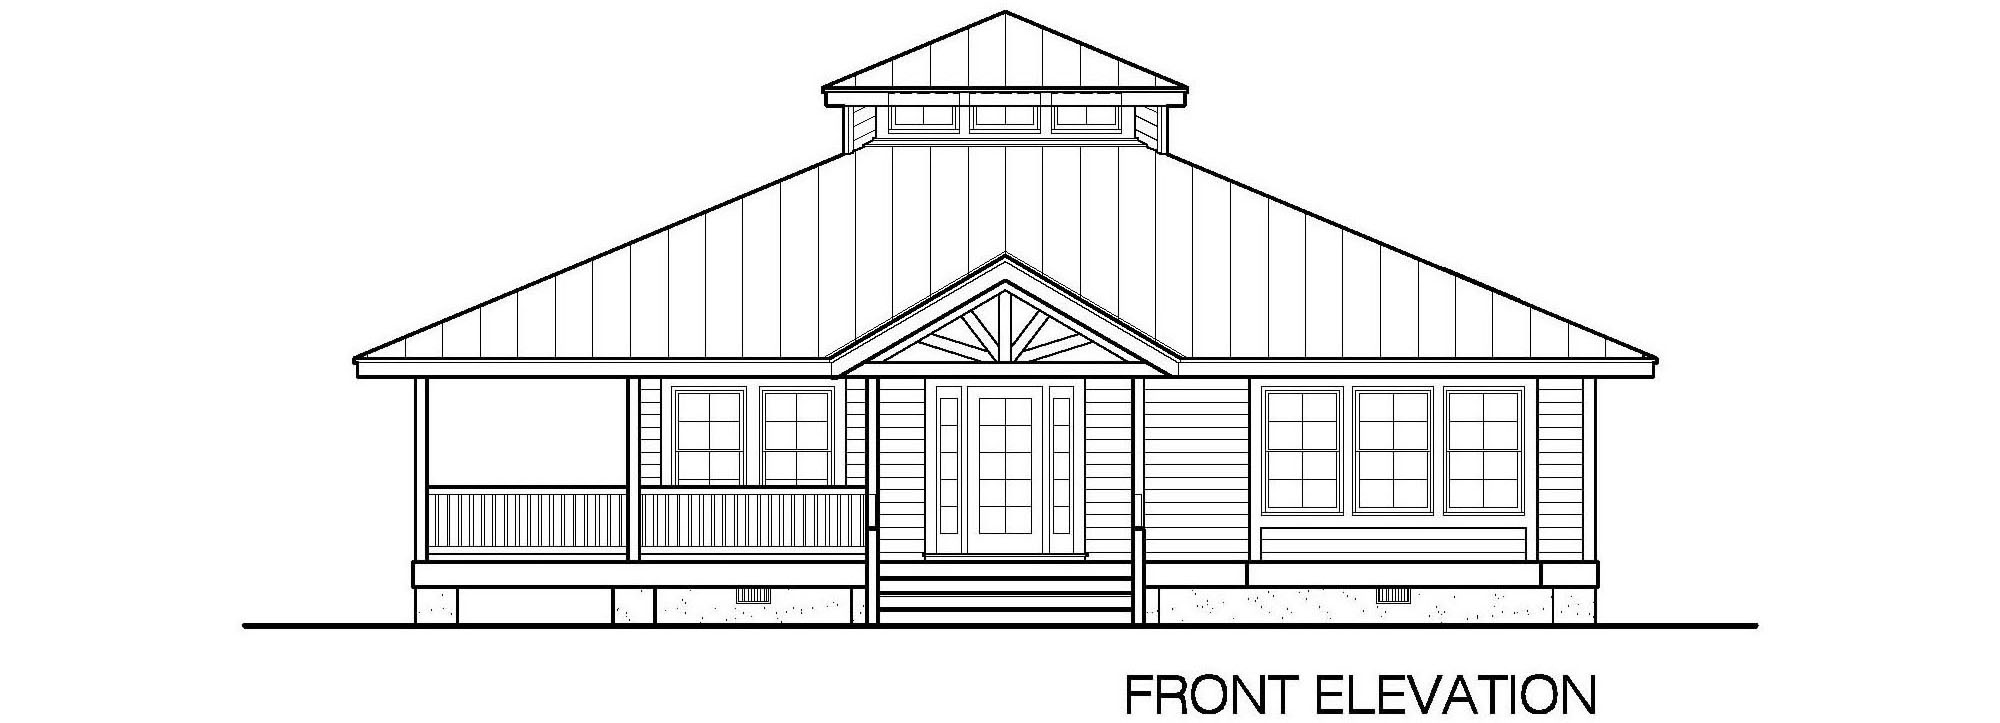 House Plans Attached Garage Apartment besides One Bedroom Cabin With Loft Floor Plans besides House Plans With Elevators 25 Luxury House Plans With Elevators furthermore Hip Cottage Wrap Around Porch 1423 Sf moreover Small House Plans Garage. on house plans with rv garage attached